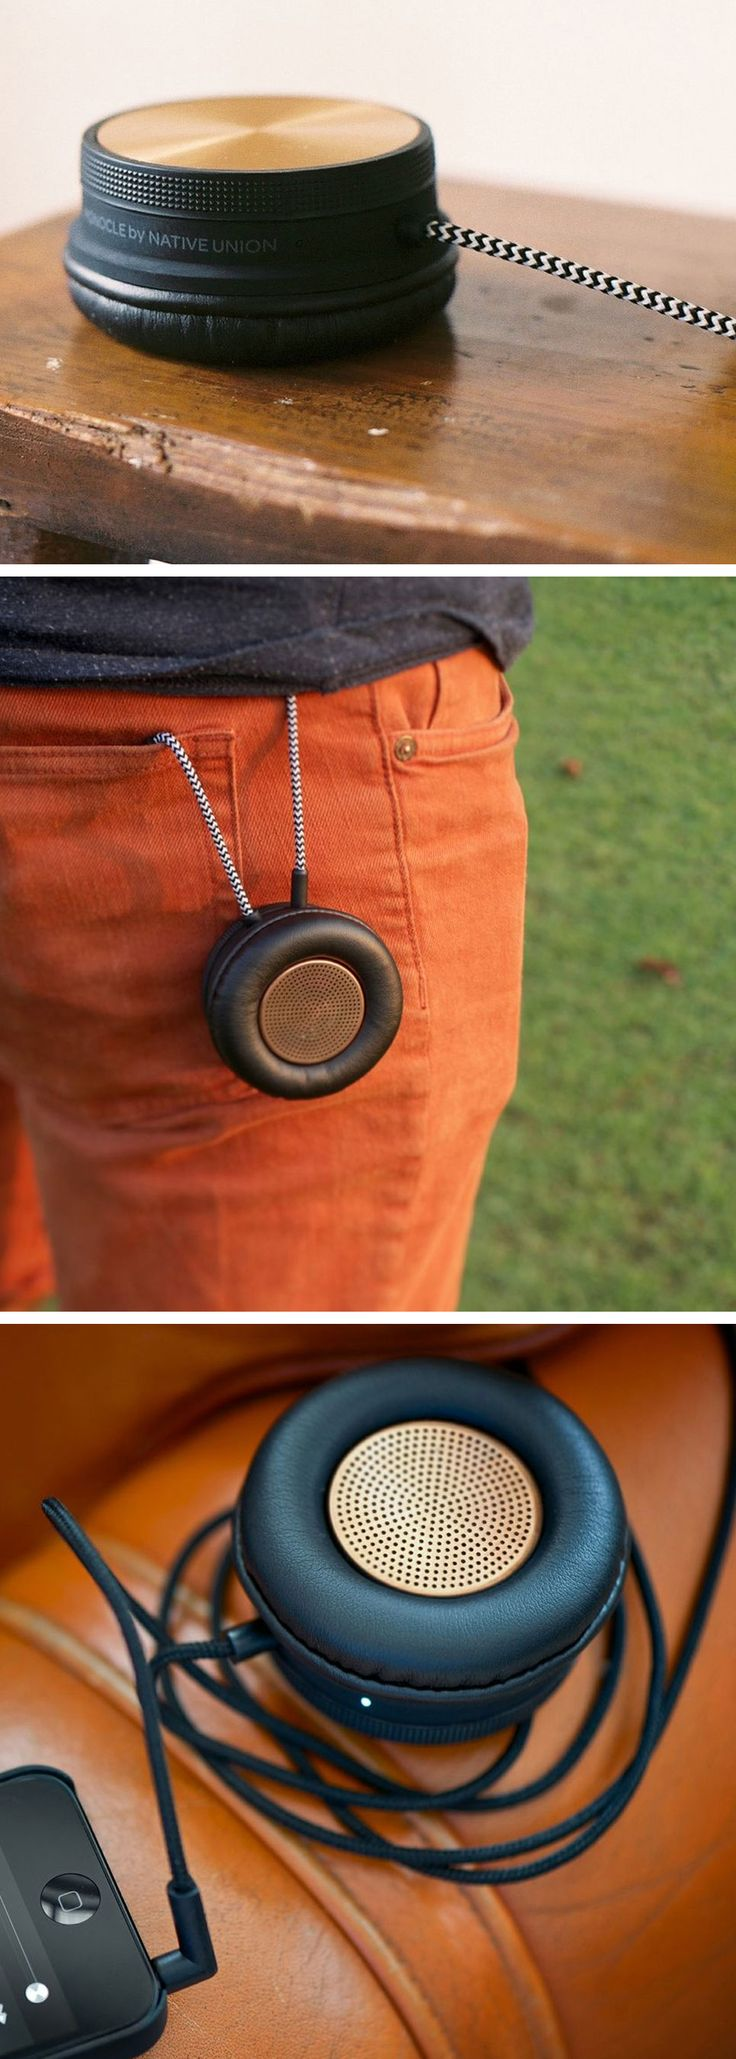 Limited Edition Monocle // it's a speaker, handset and speakerphone that allows you to enjoy music and calls in a fresh new way - however and wherever you are #product_design #industrial_design